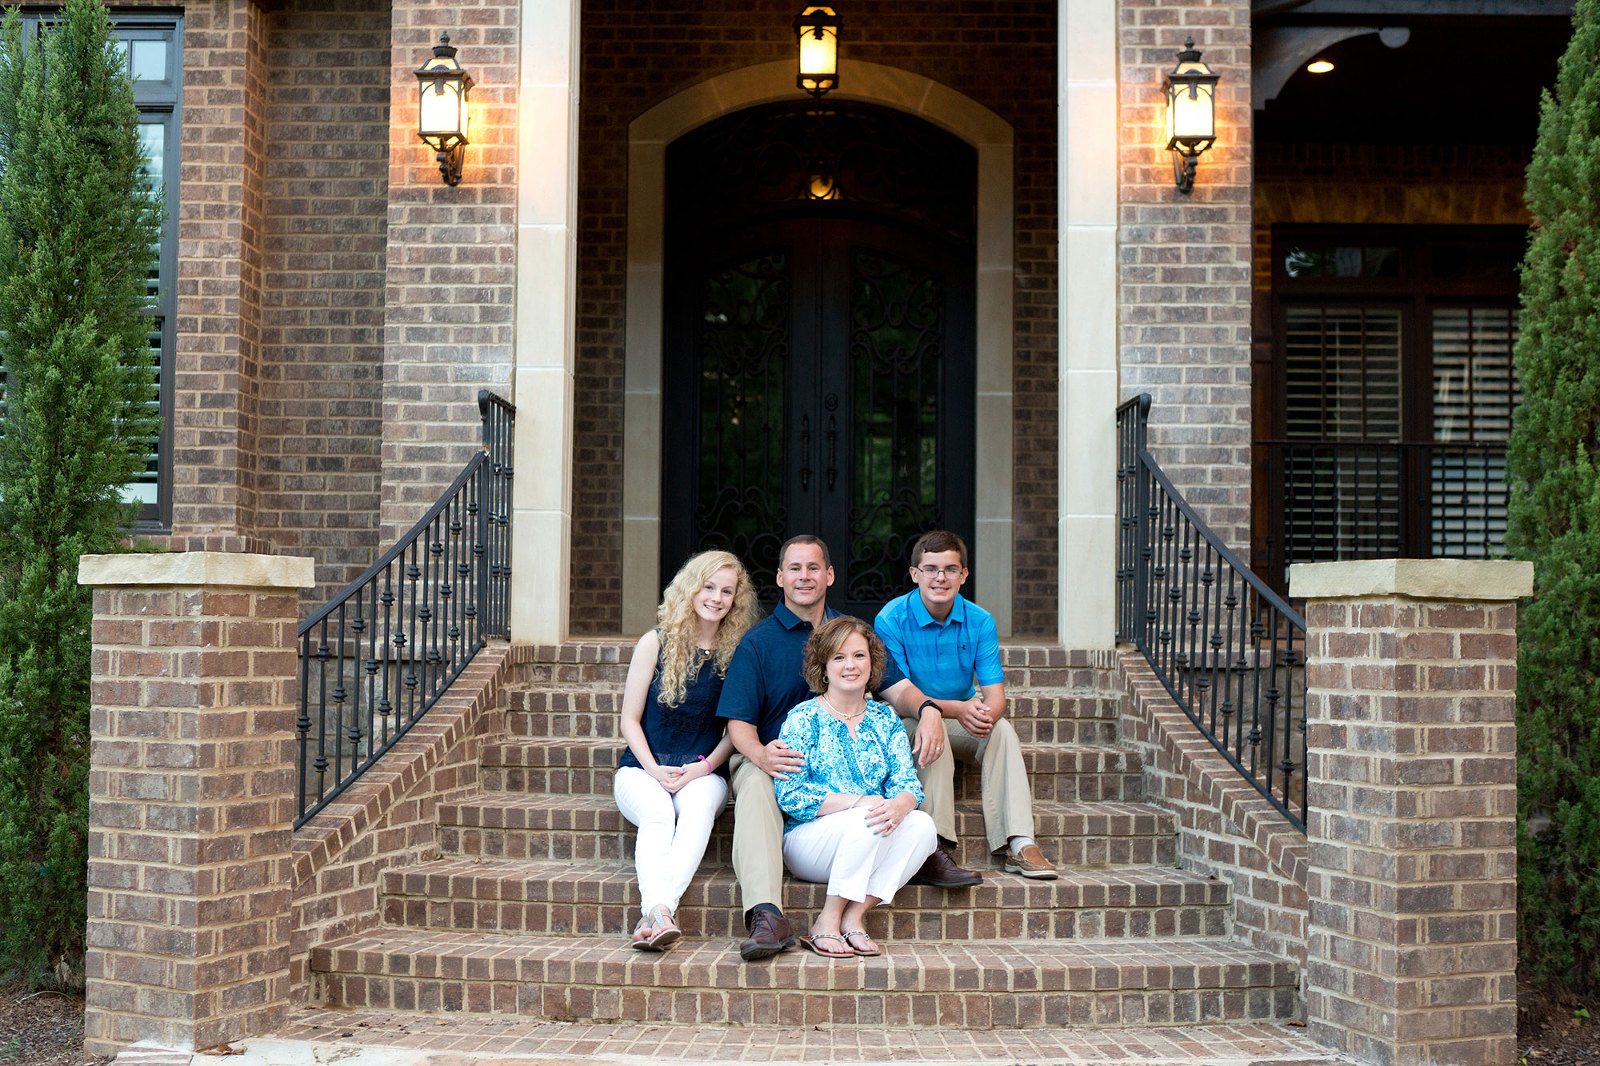 family sits together on the front steps of their home